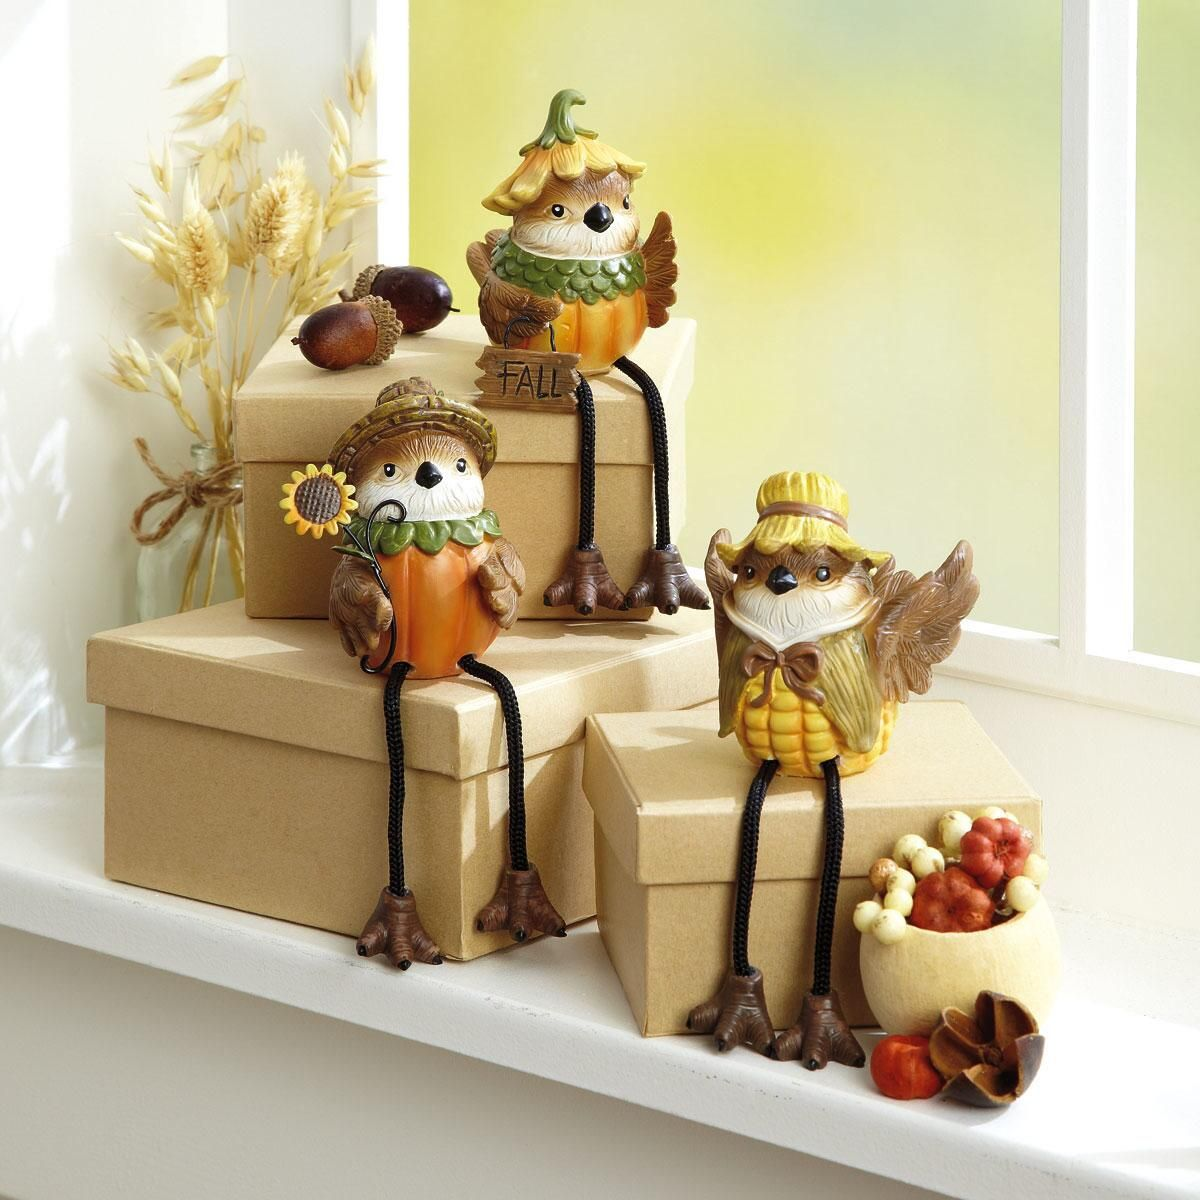 Autumn Bird Sitter Figurines